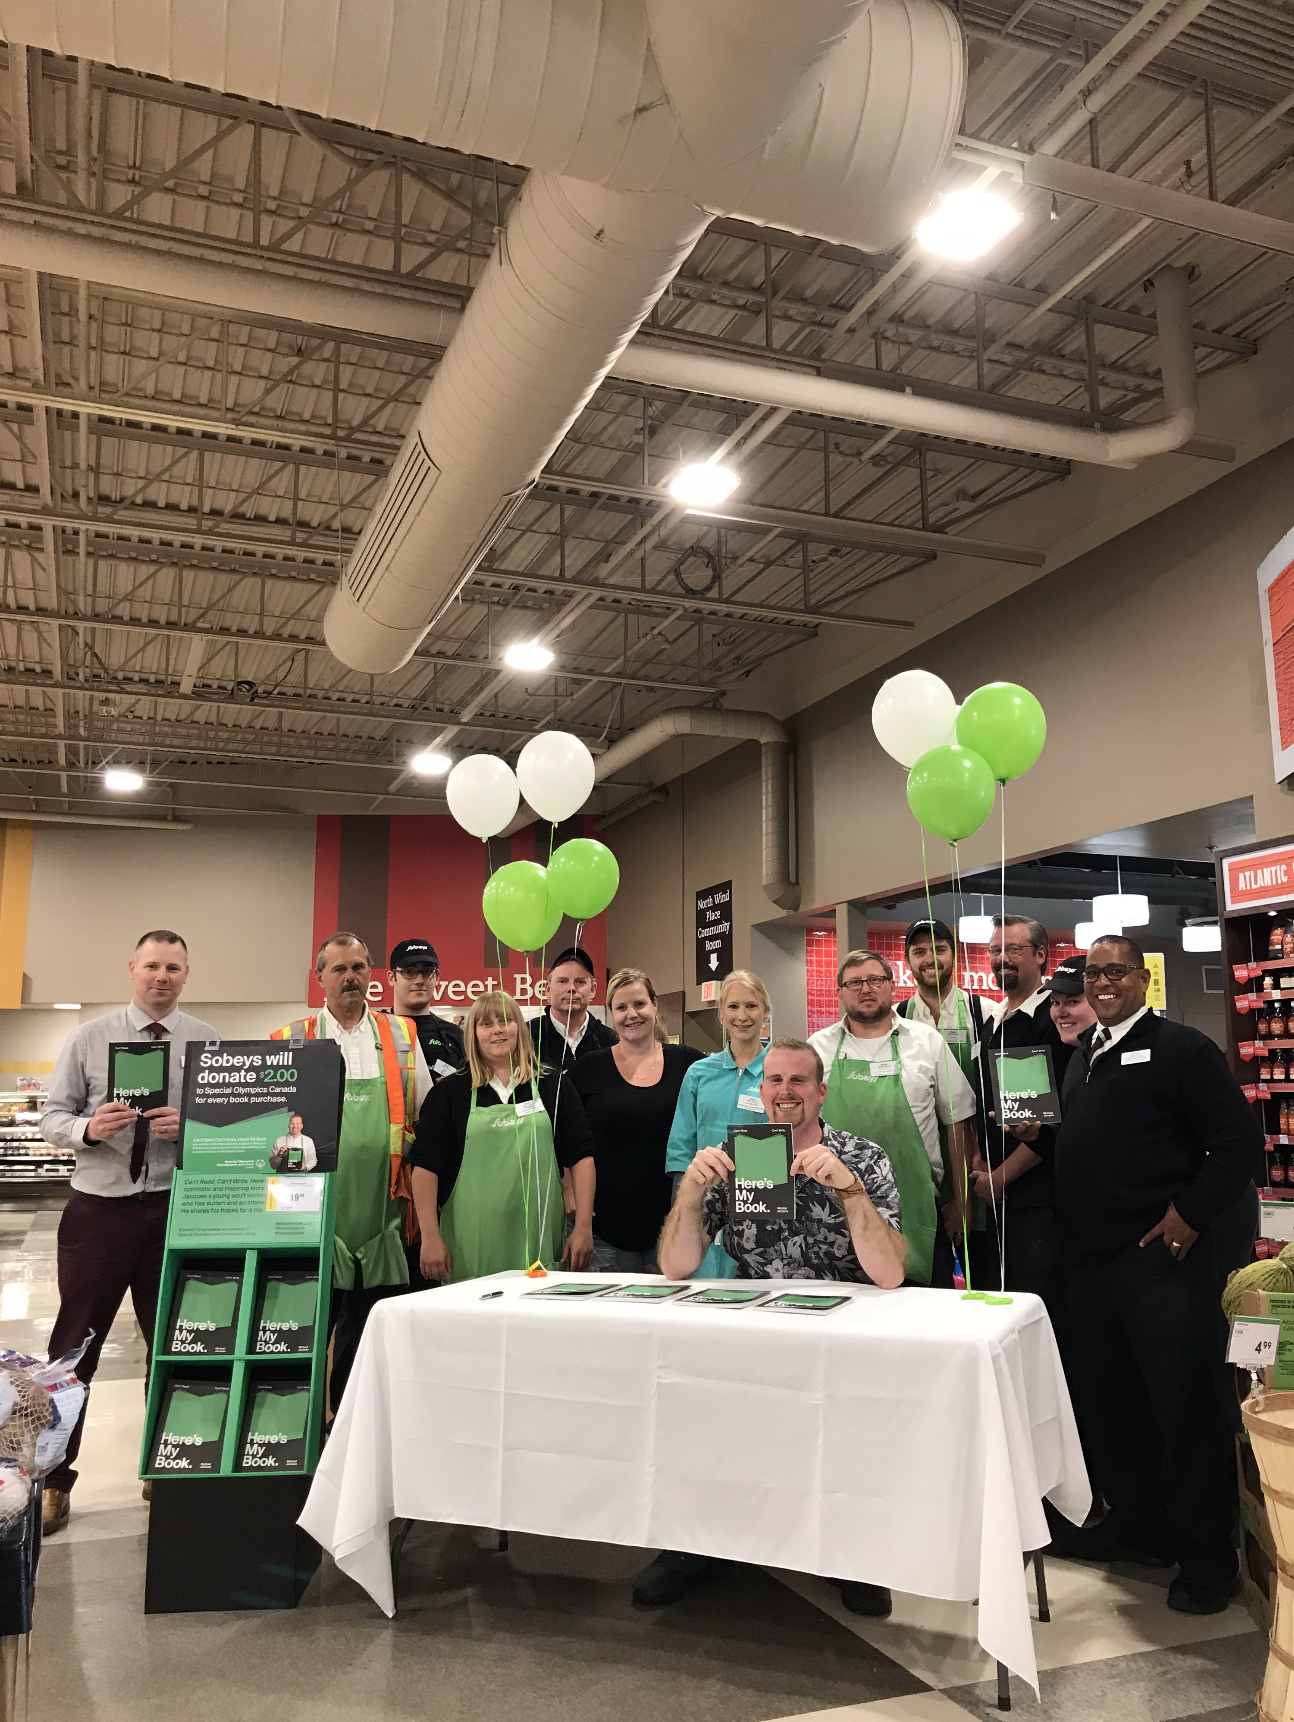 Day 1 – North & Windsor Sobeys. You can't miss me, I'm by the balloons!